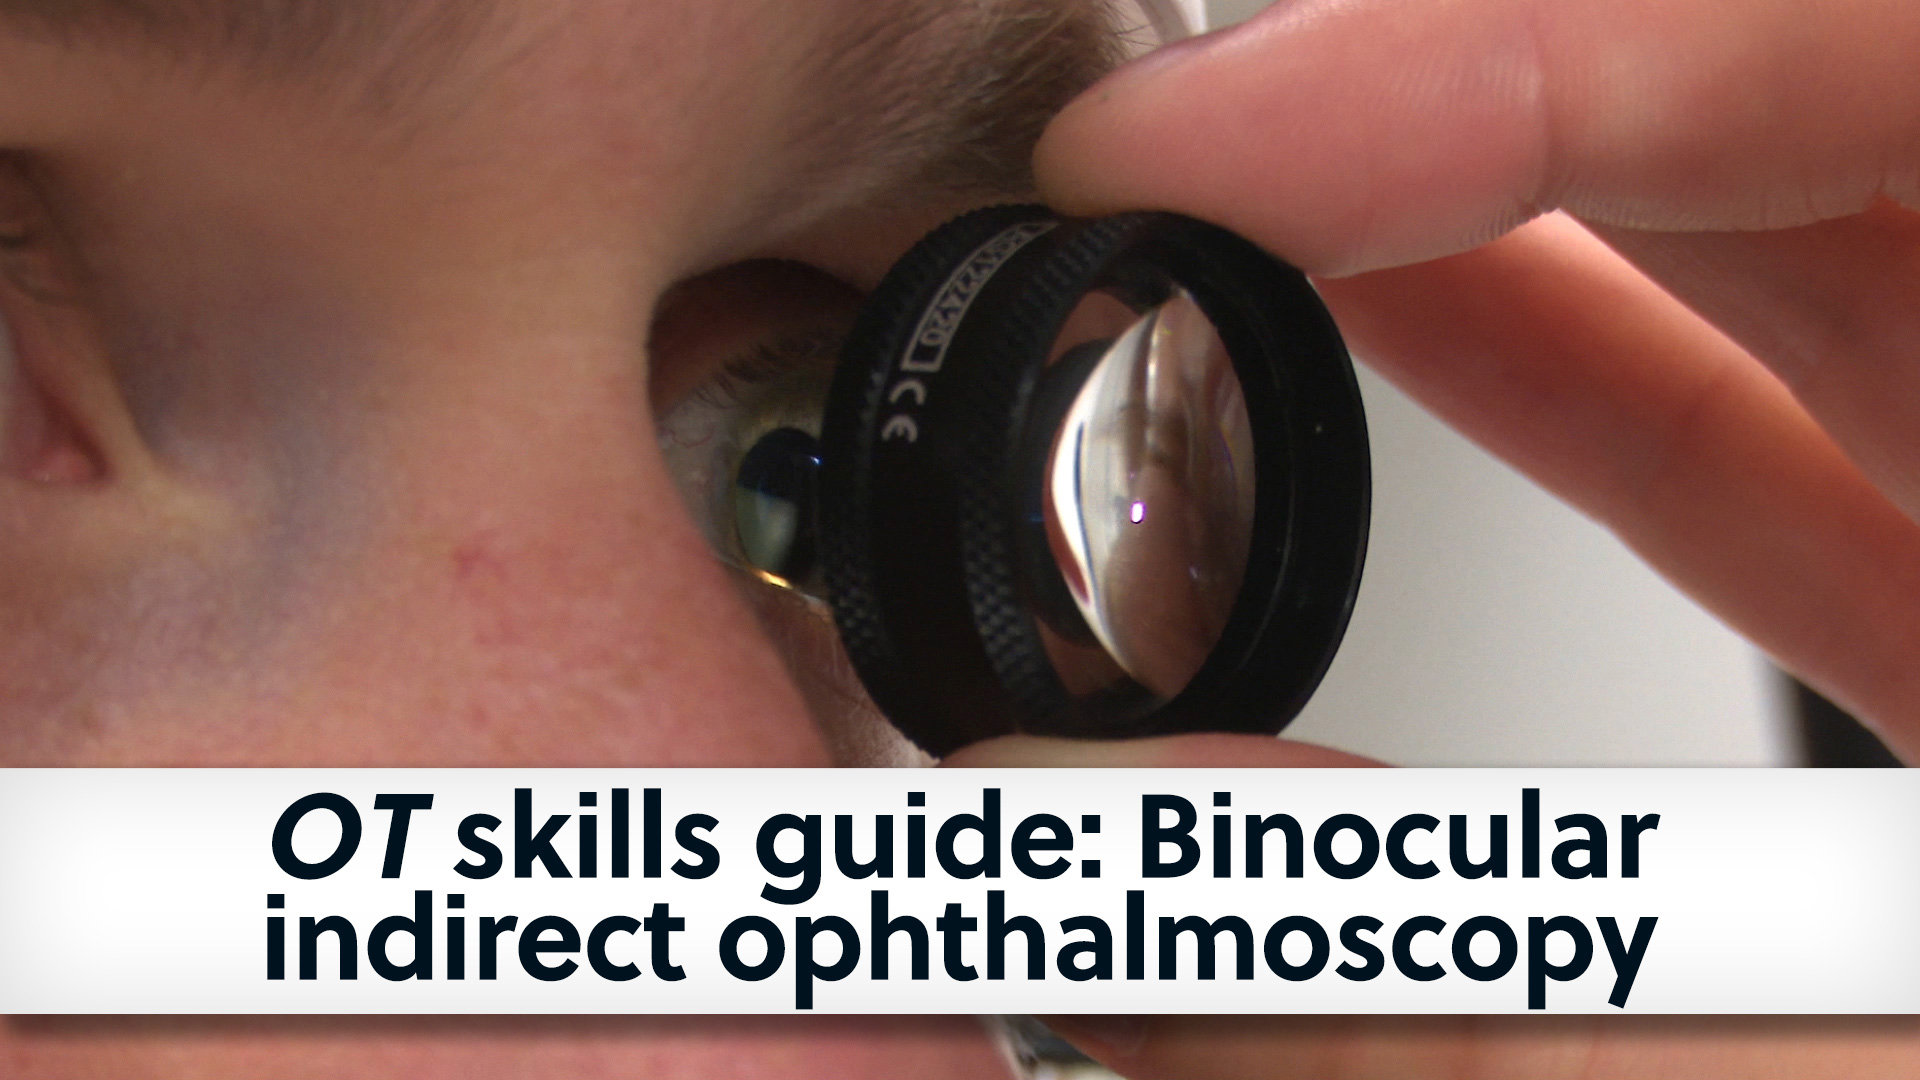 Banner cover image of the binocular indirect ophthalmoscopy skills guide